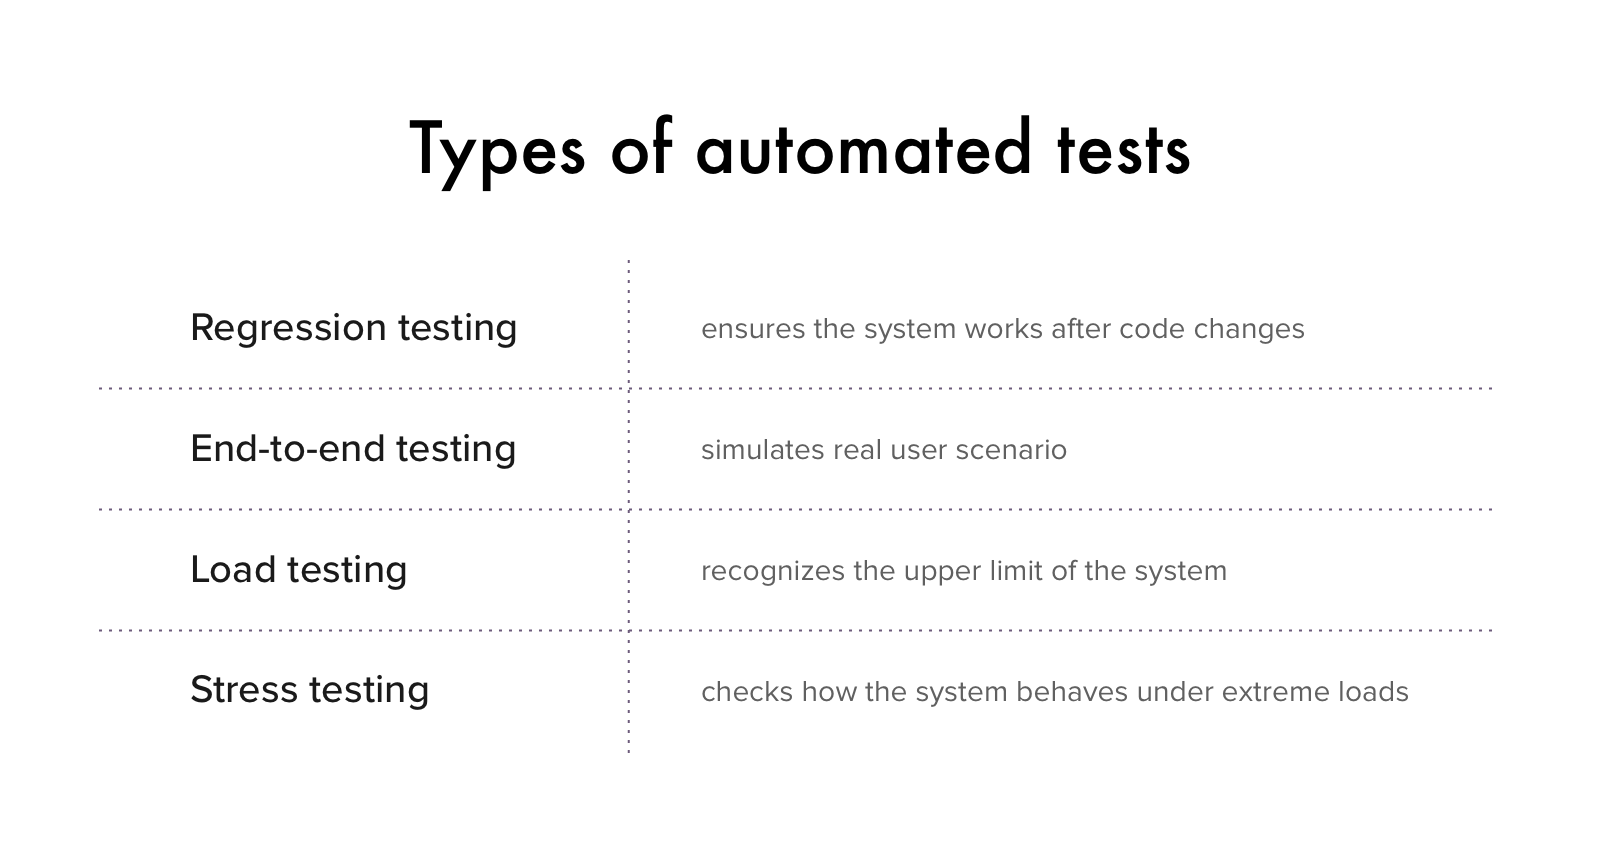 Types of automated tests